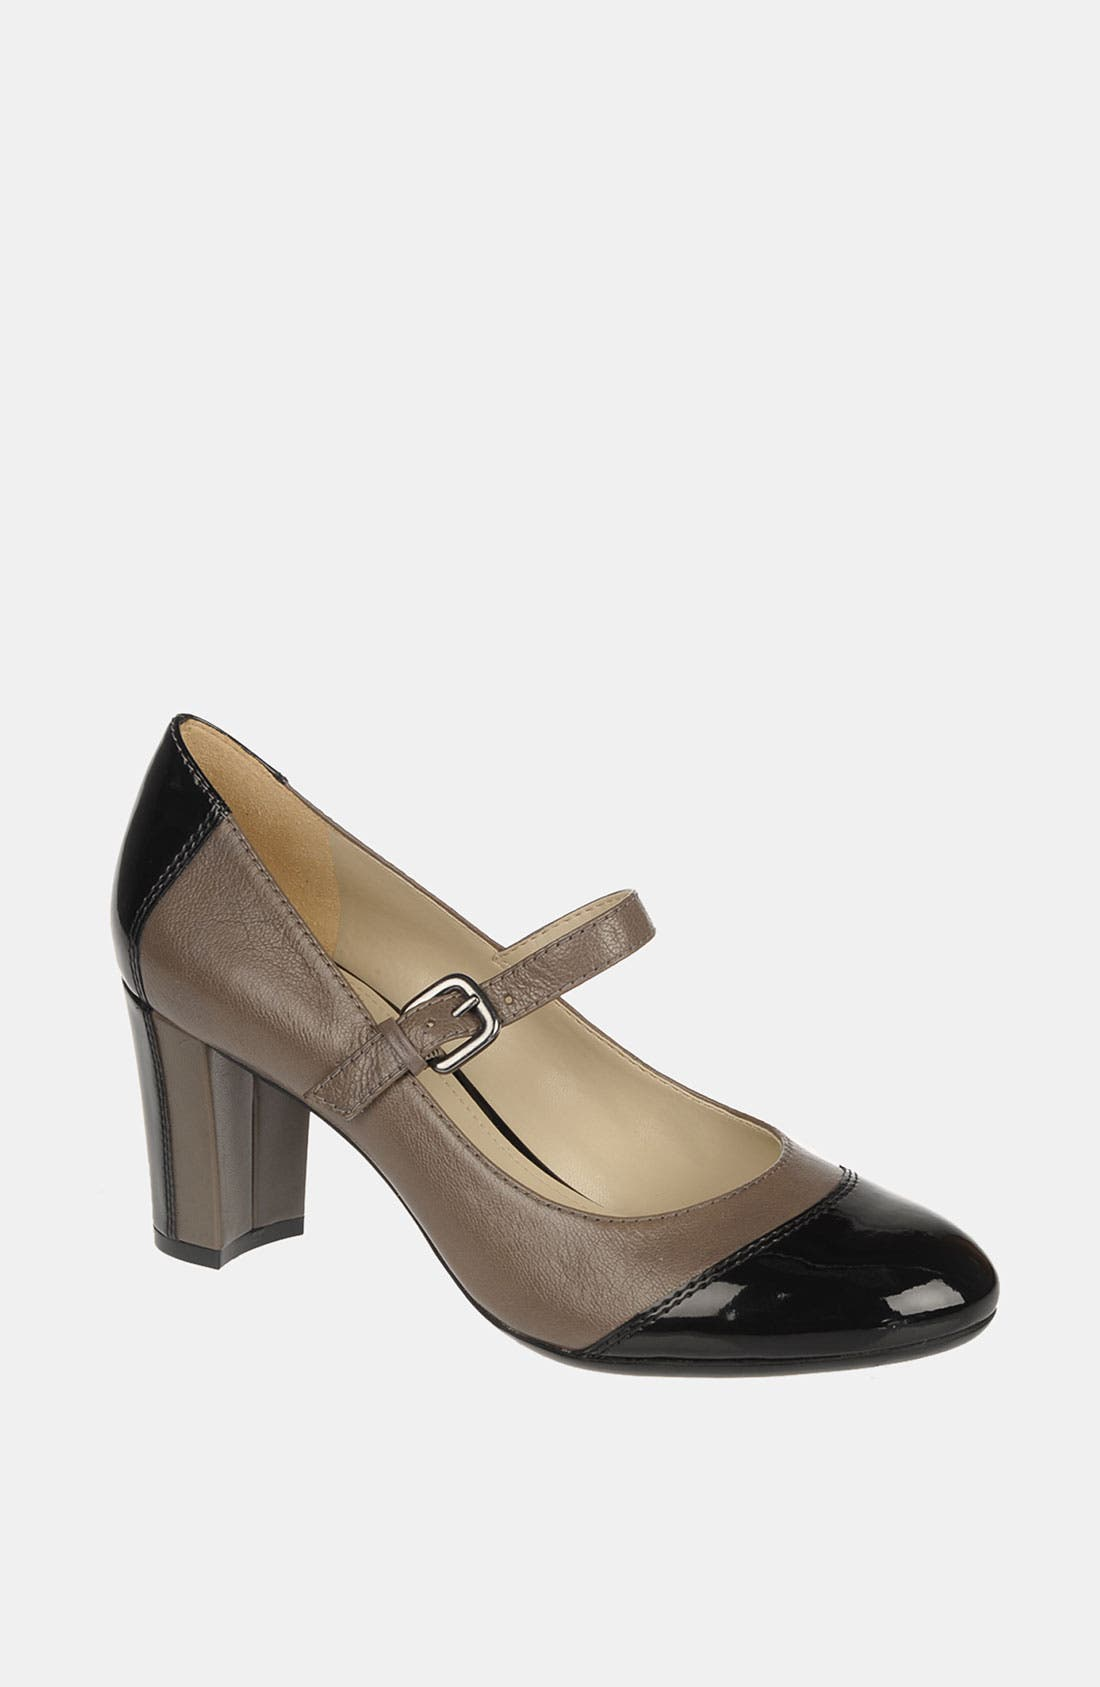 Alternate Image 1 Selected - Naturalizer 'Estelle' Pump